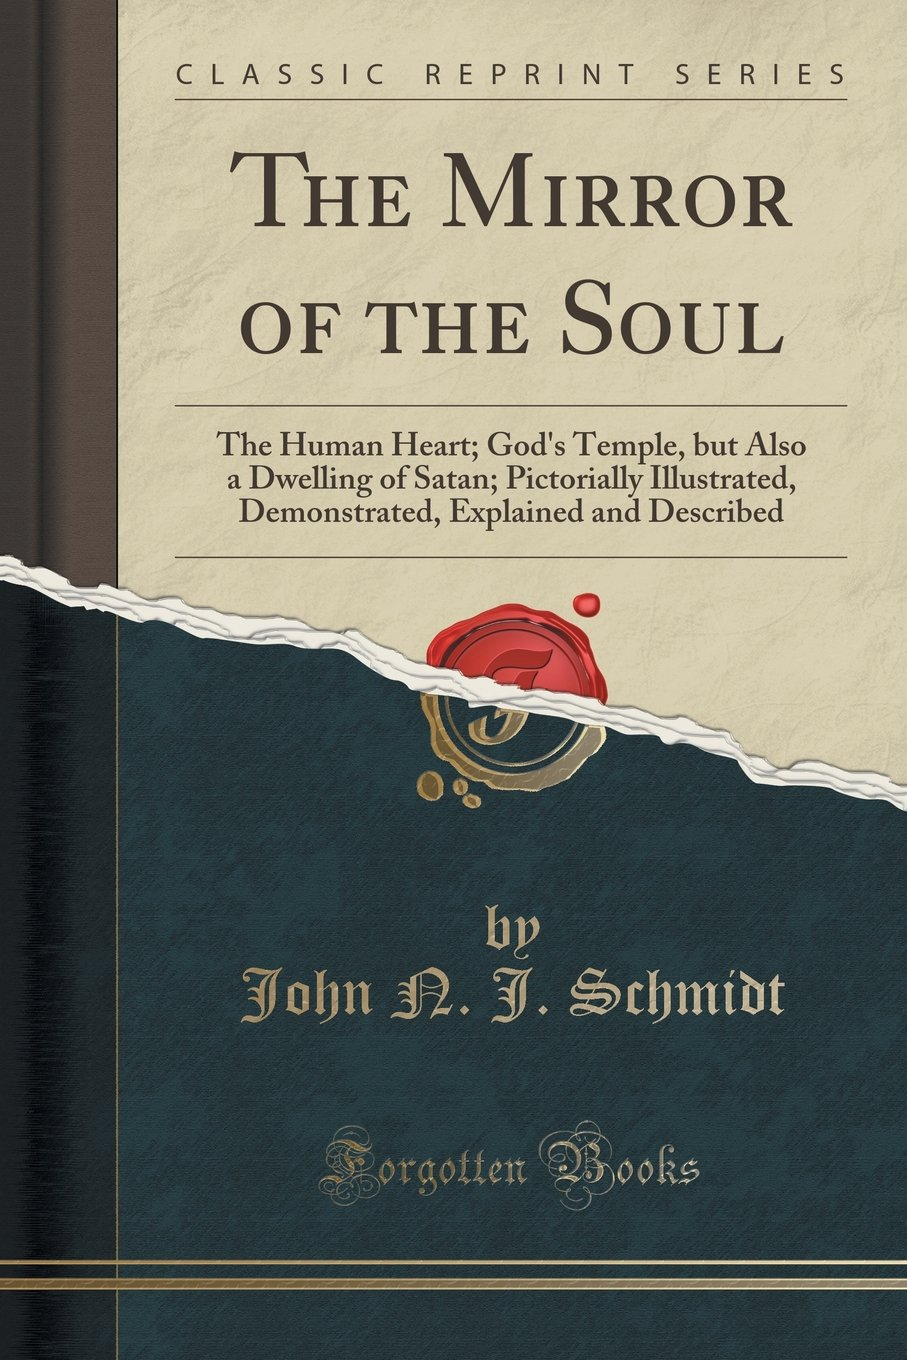 The Mirror of the Soul: The Human Heart; God's Temple, but Also a Dwelling of Satan; Pictorially Illustrated, Demonstrated, Explained and Described (Classic Reprint) pdf epub